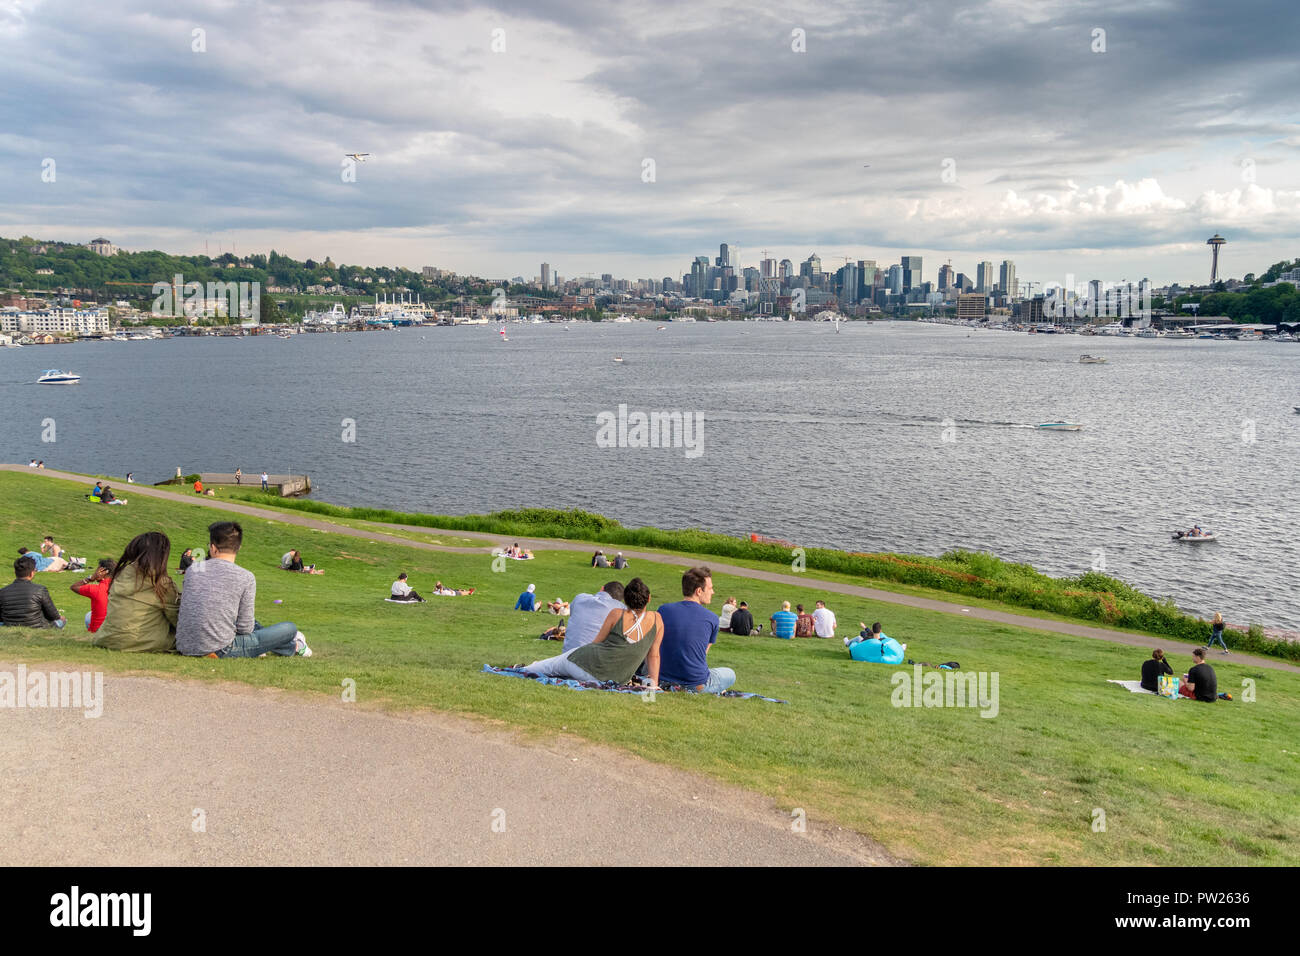 SEATTLE, WA, MAY 6, 2018: Dozens of people visit Gas Works Park to view Seattle's skyline across Lake Union. - Stock Image